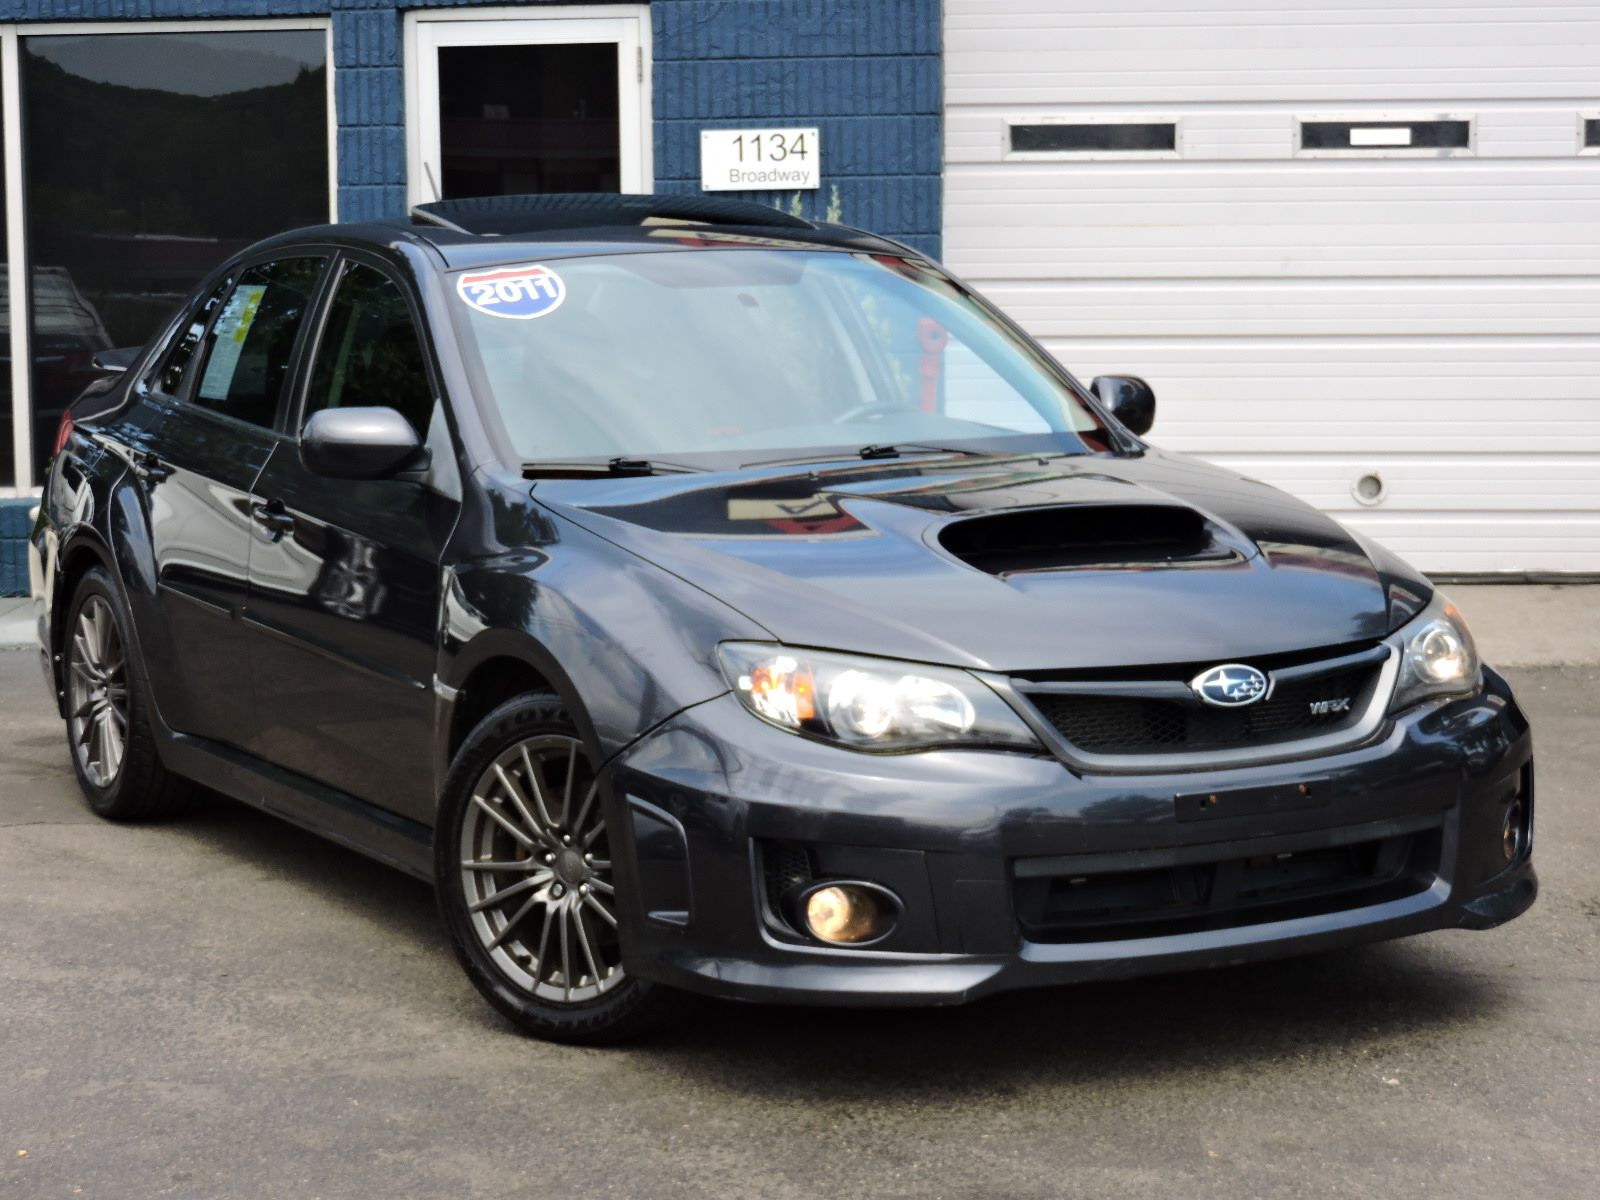 used 2011 subaru impreza sedan wrx wrx premium at auto house usa saugus. Black Bedroom Furniture Sets. Home Design Ideas